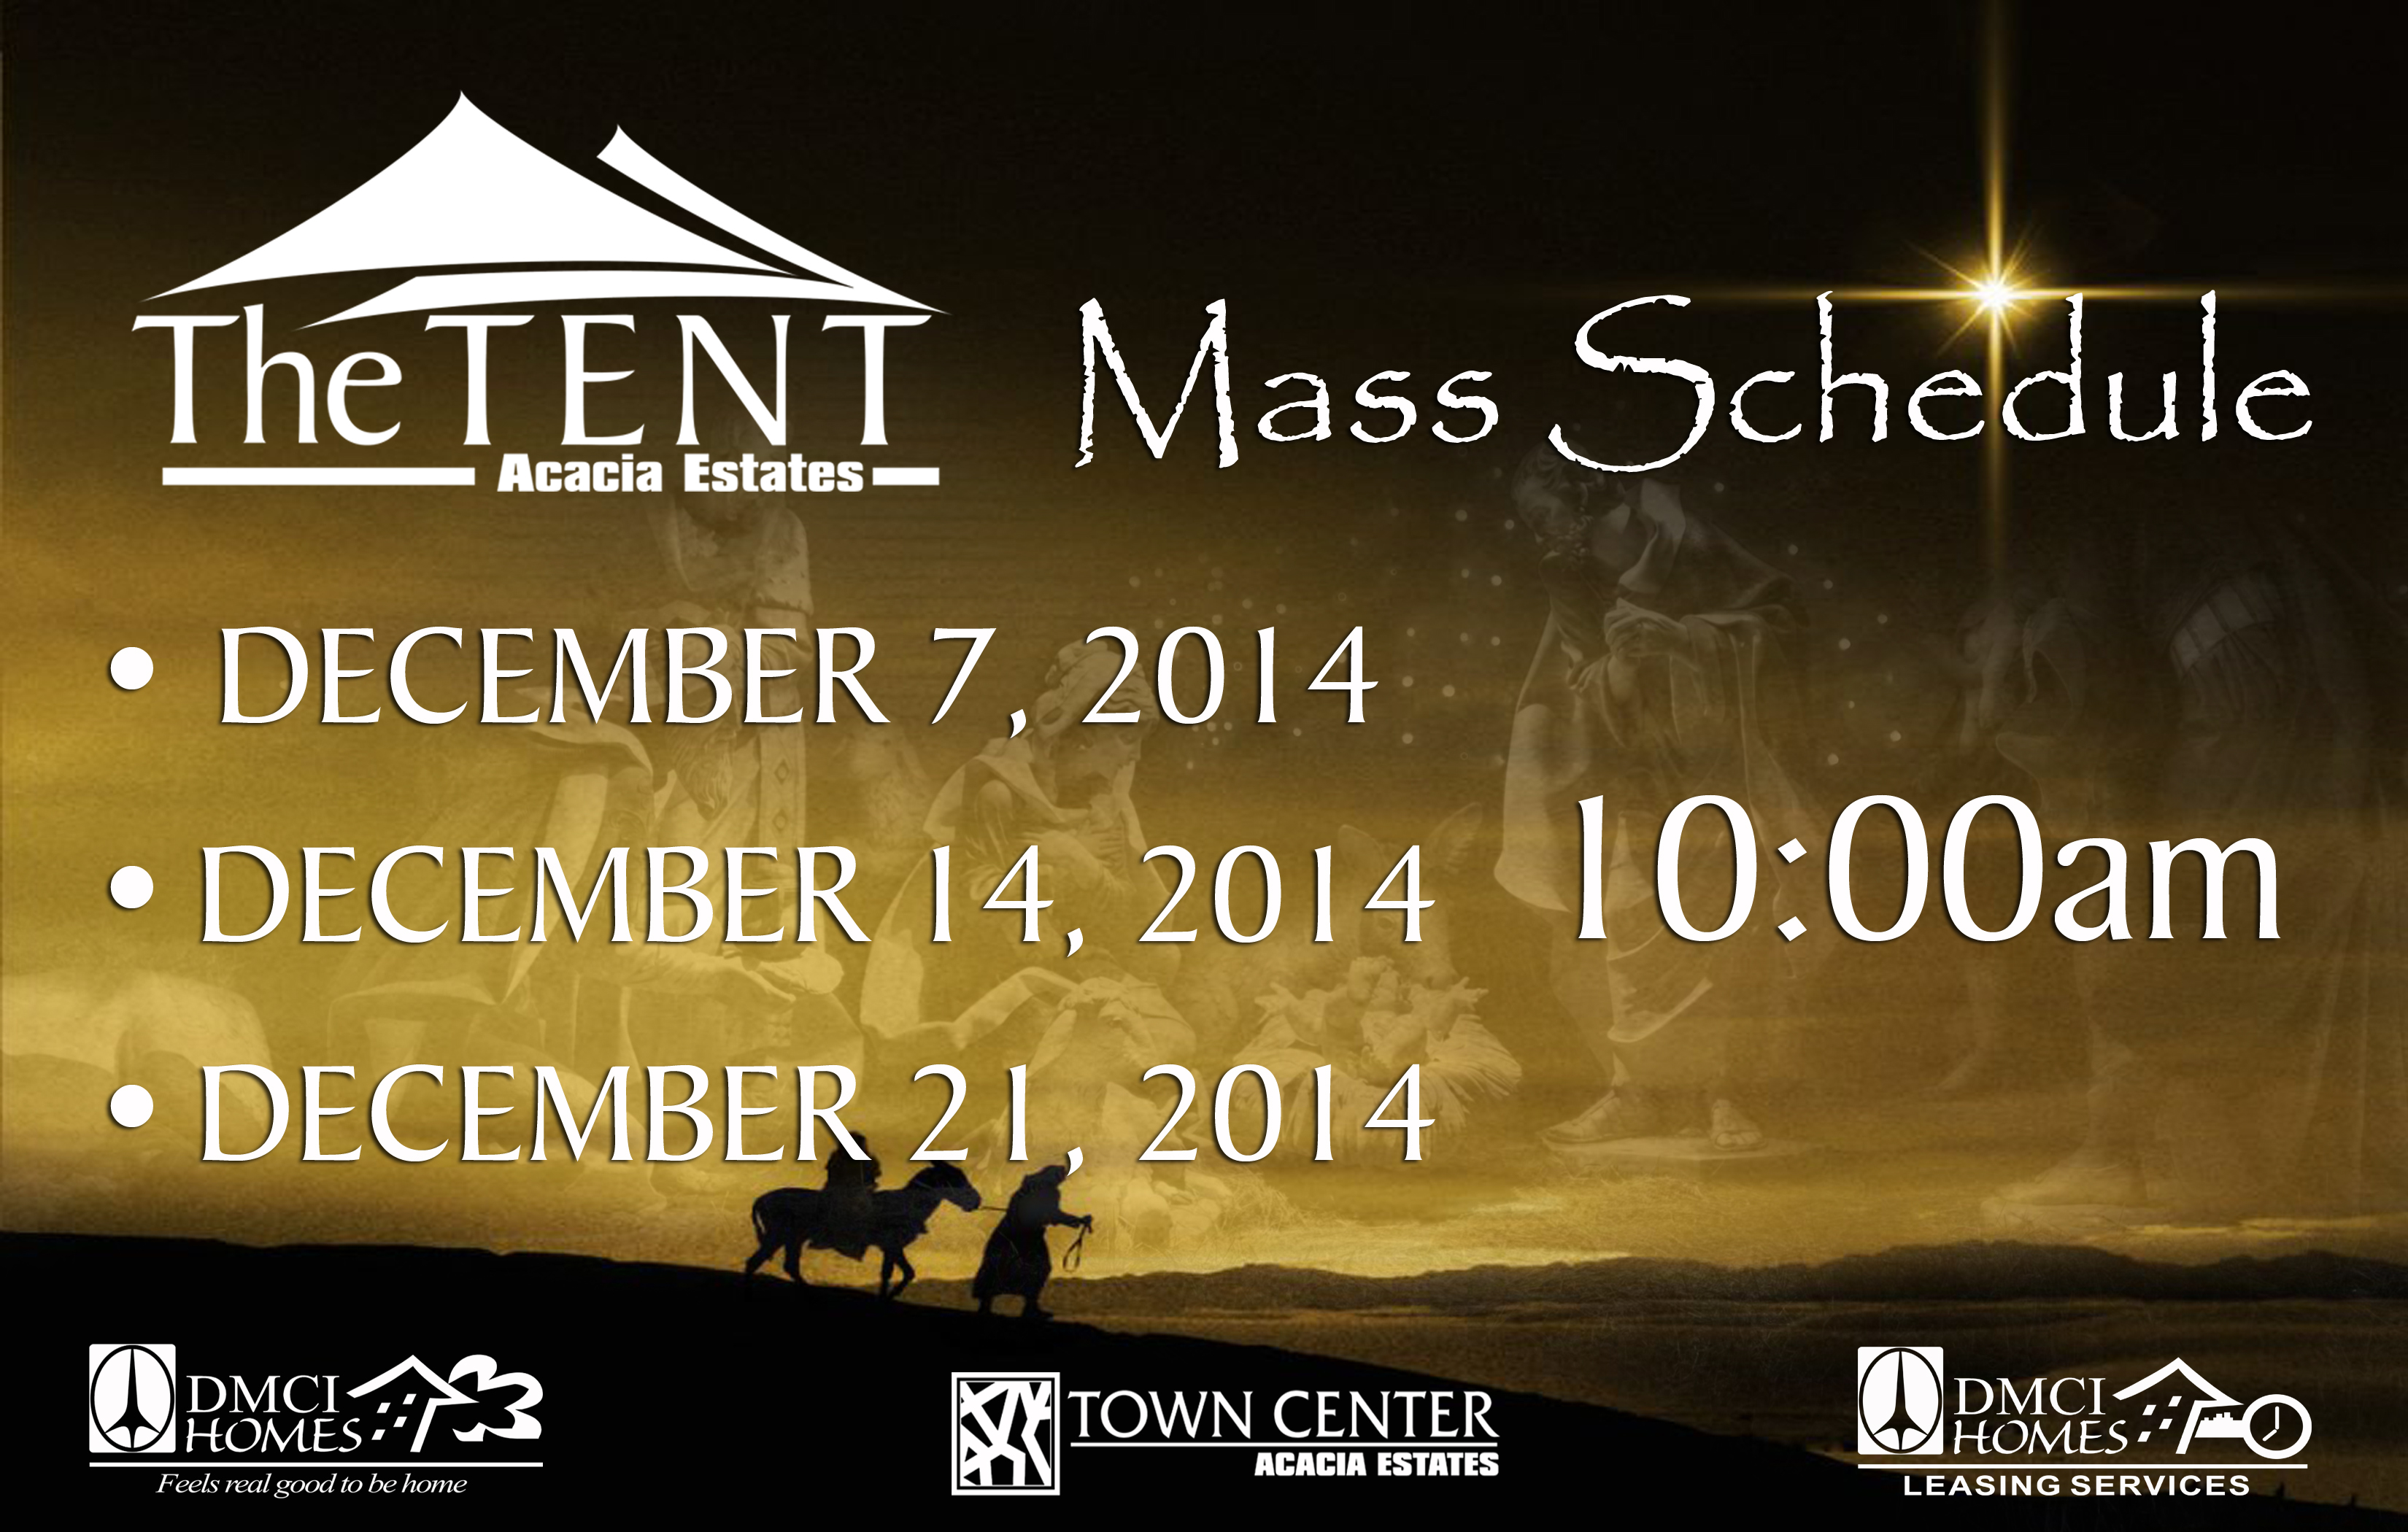 The Tent - Mass Schedule